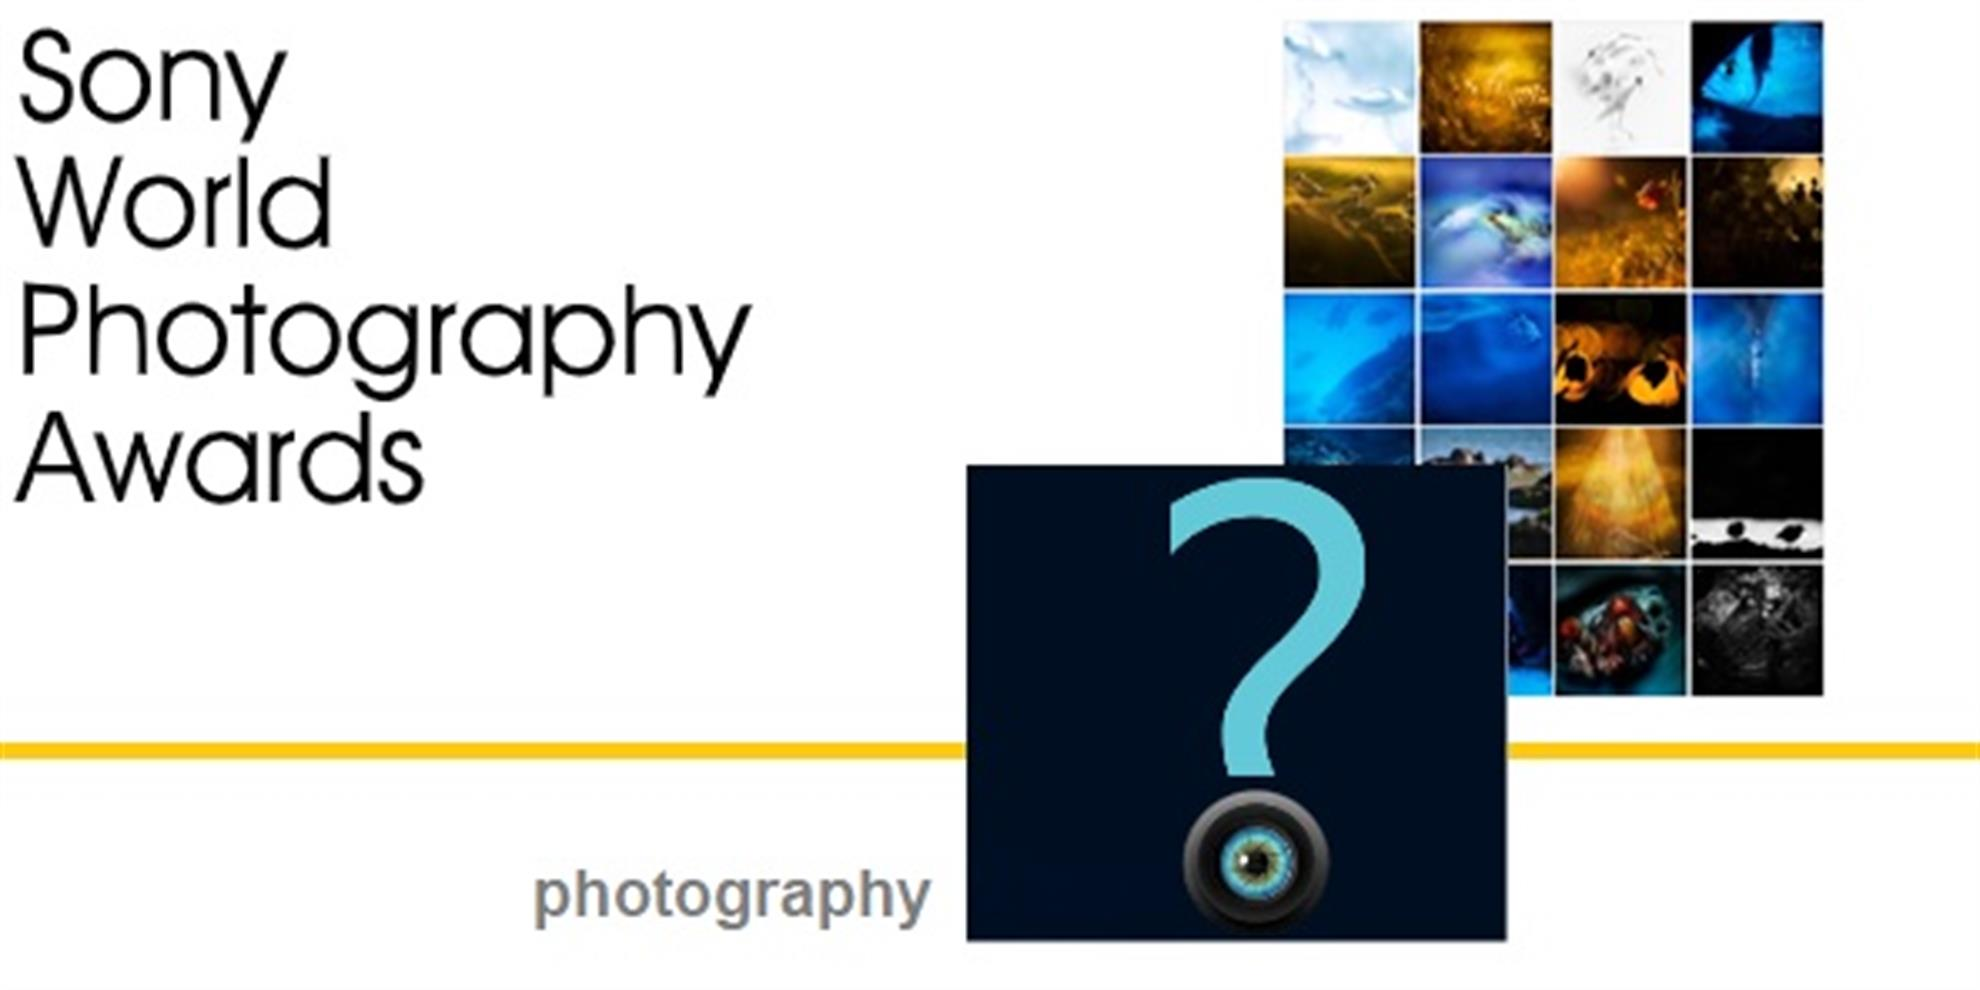 Sony World Photography Awards …. Auténtica Fotografía?